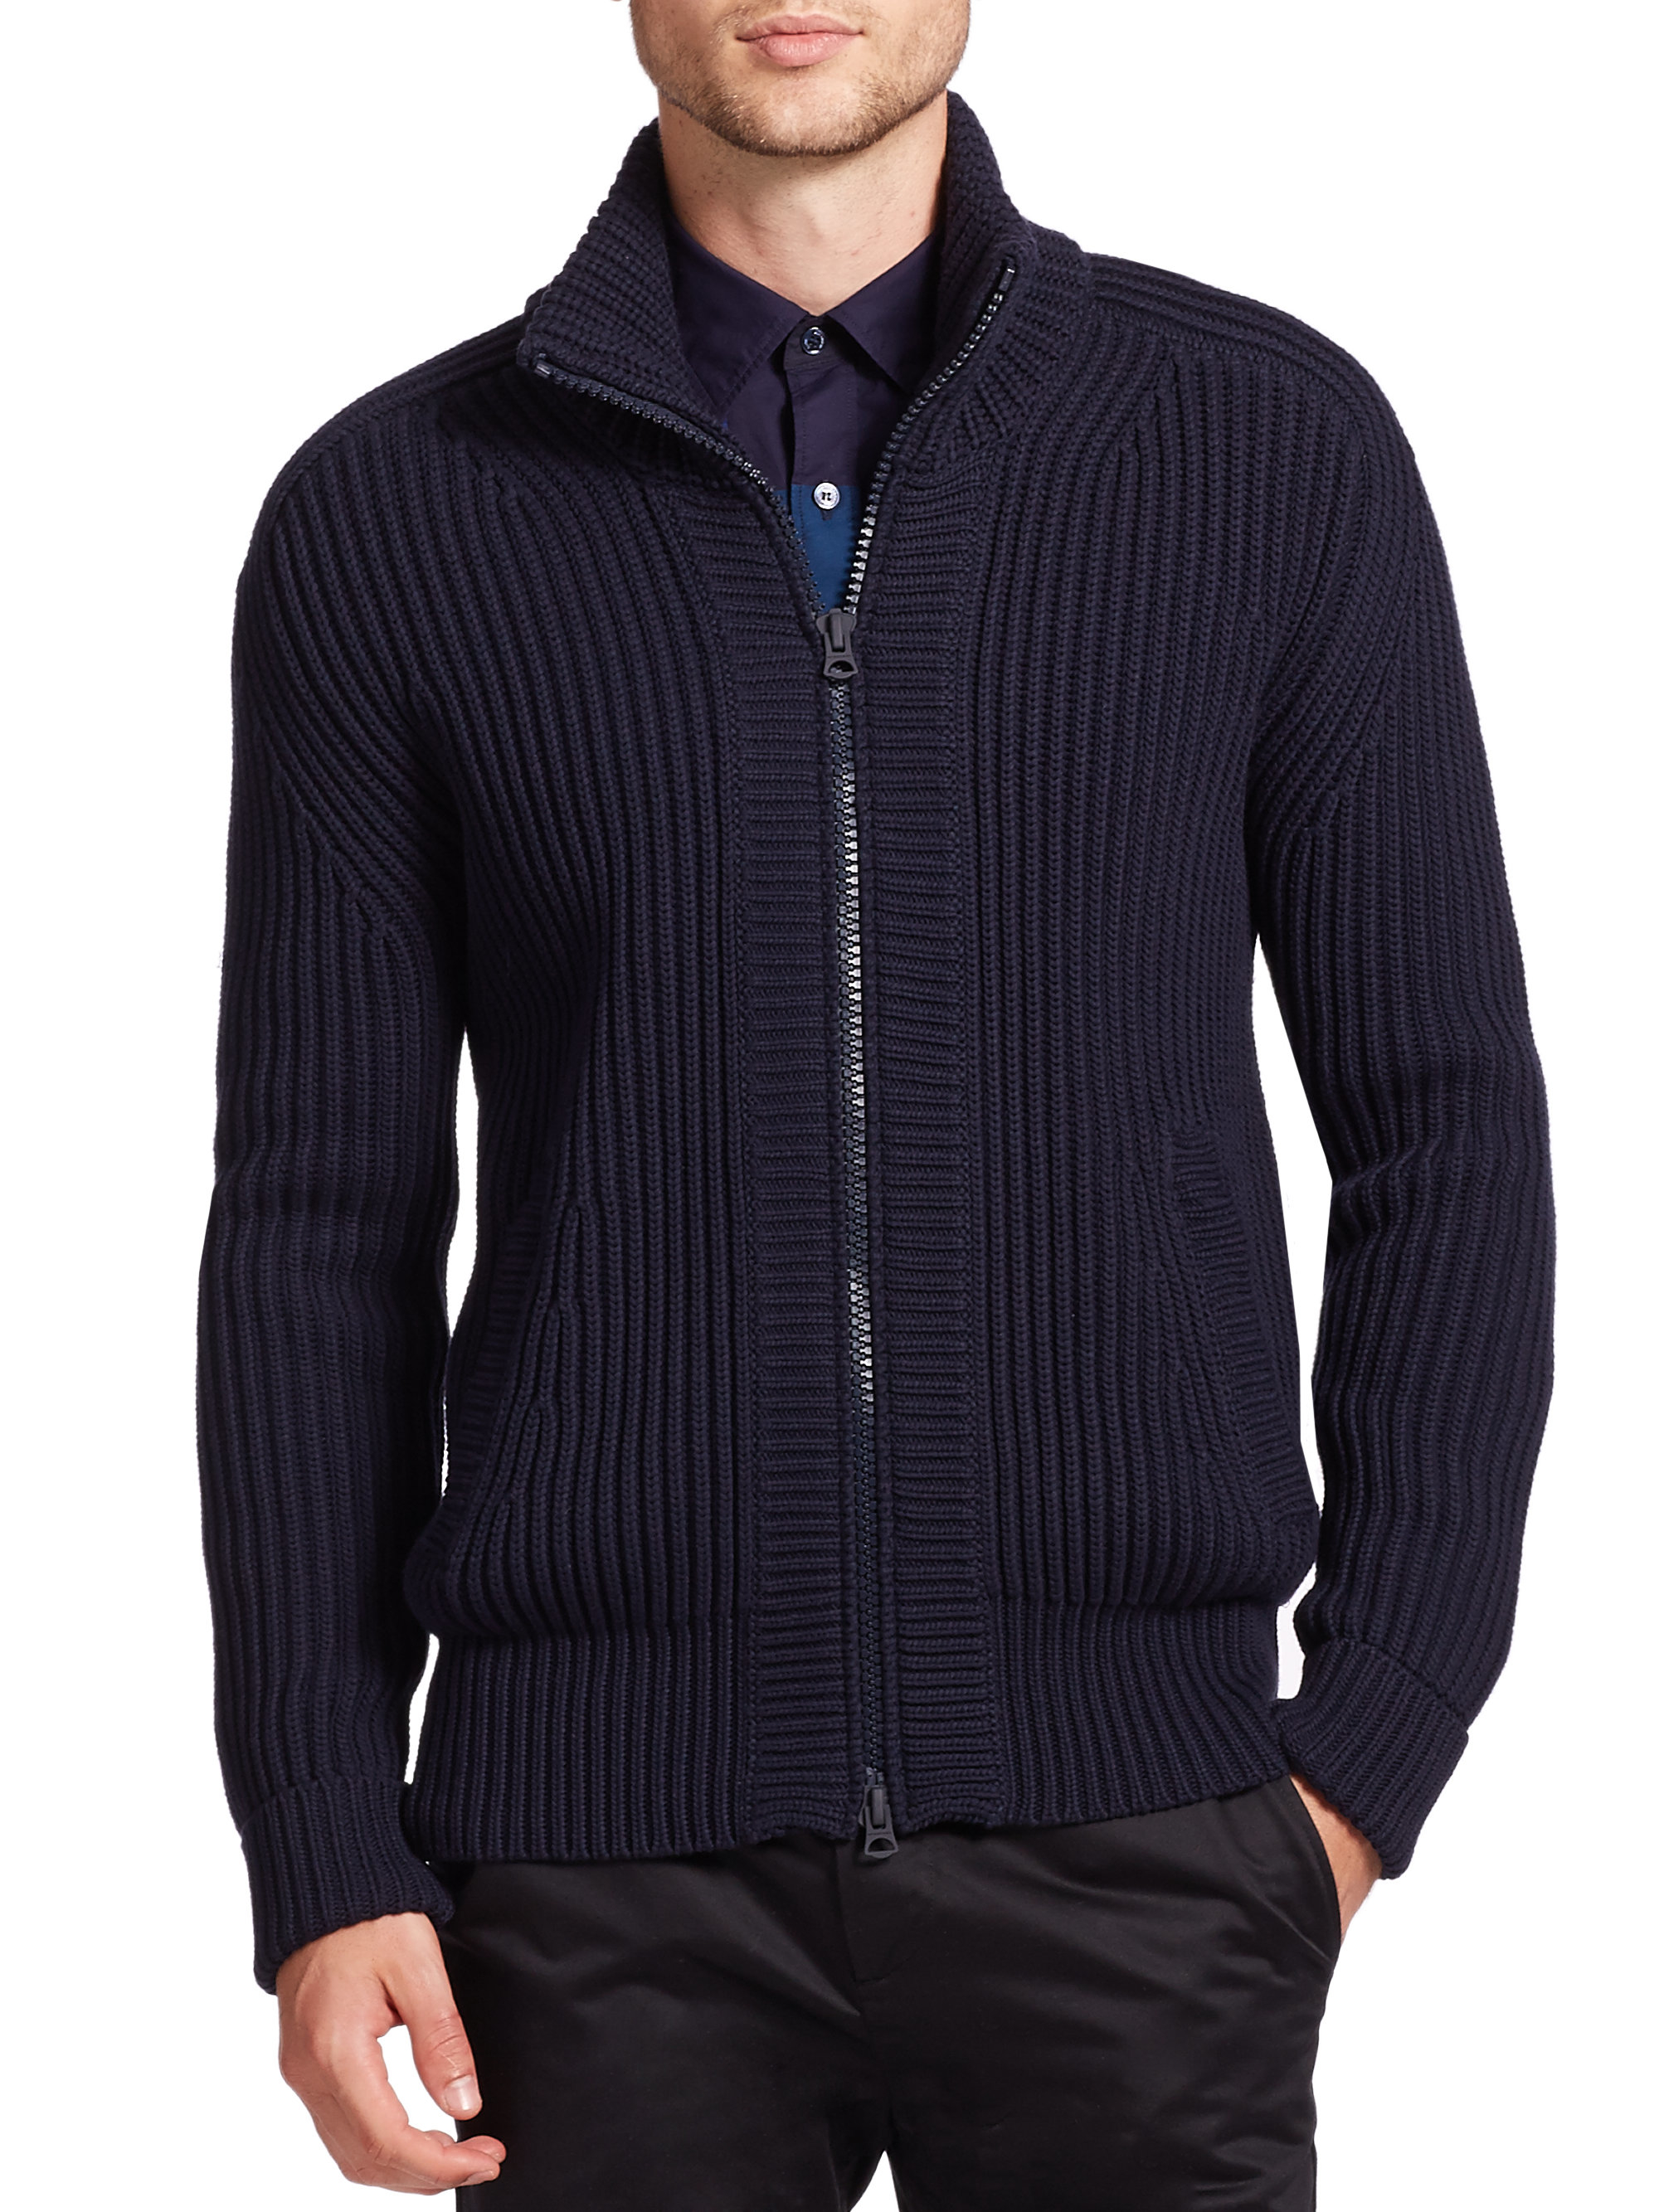 Men'S Sweater With Zipper Front - Cashmere Sweater England